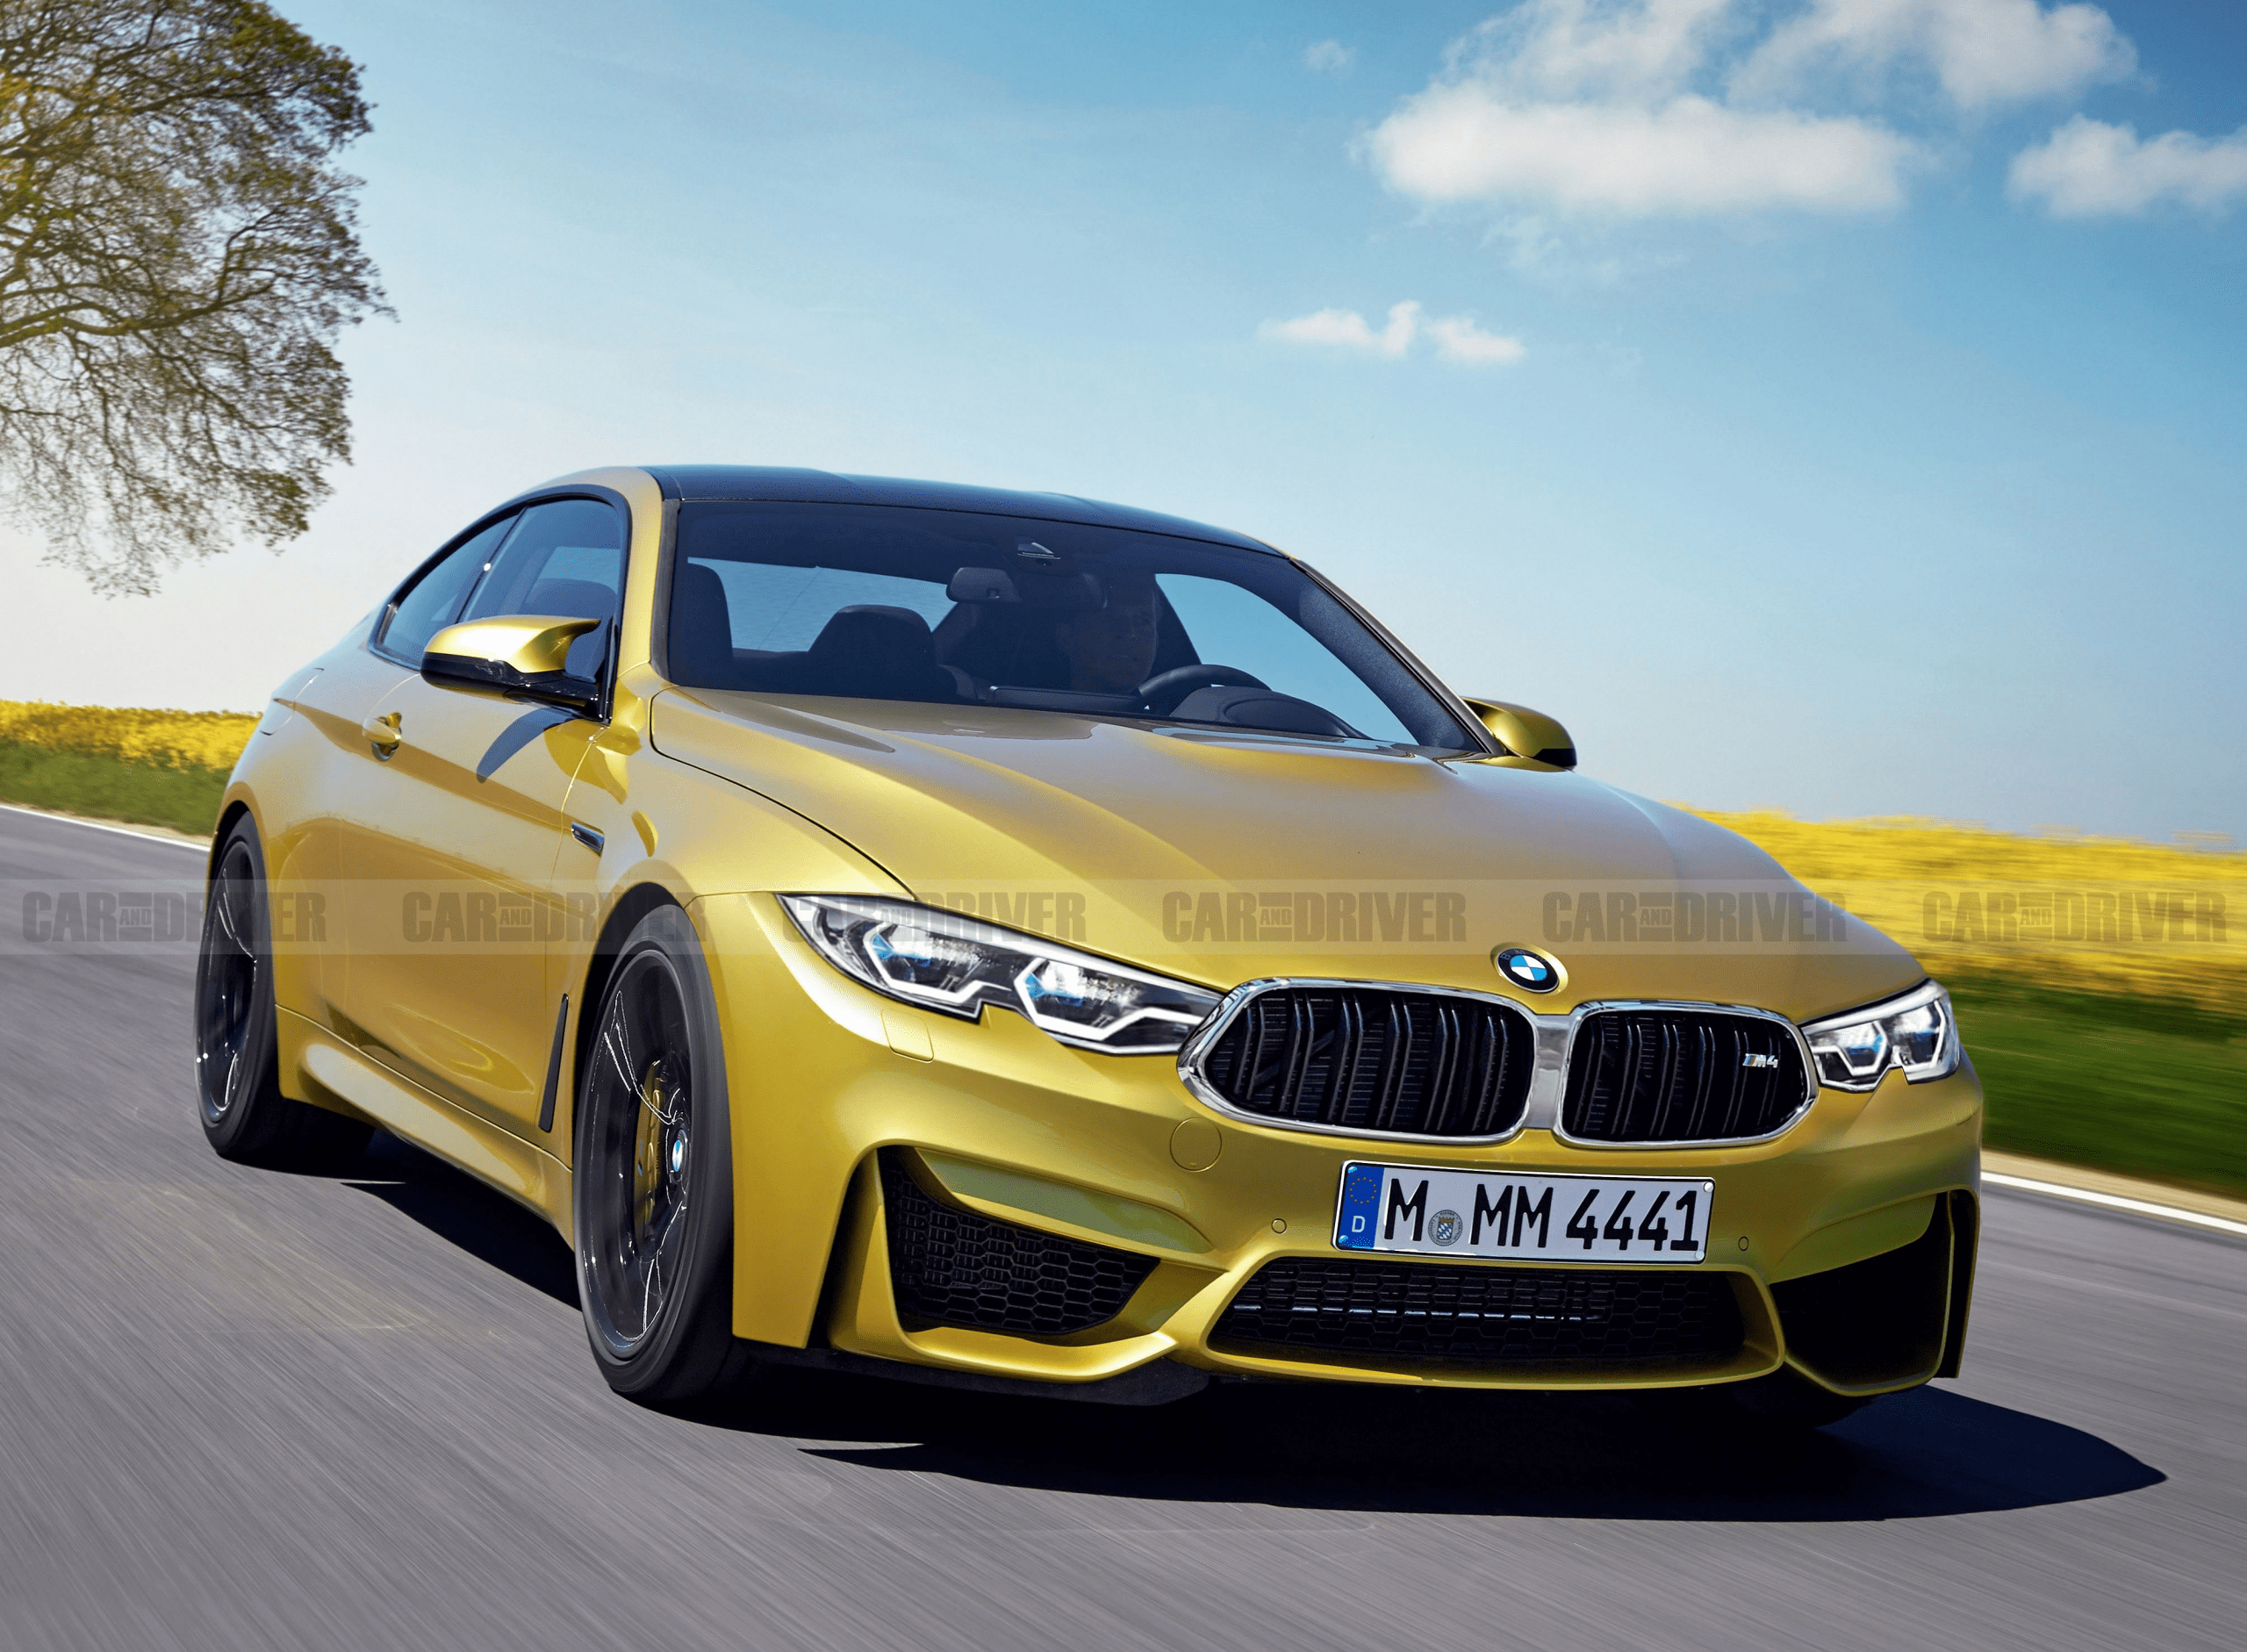 2021 Bmw M4 Gts Specs And Review In 2020 Bmw M4 Bmw Bmw M4 Coupe